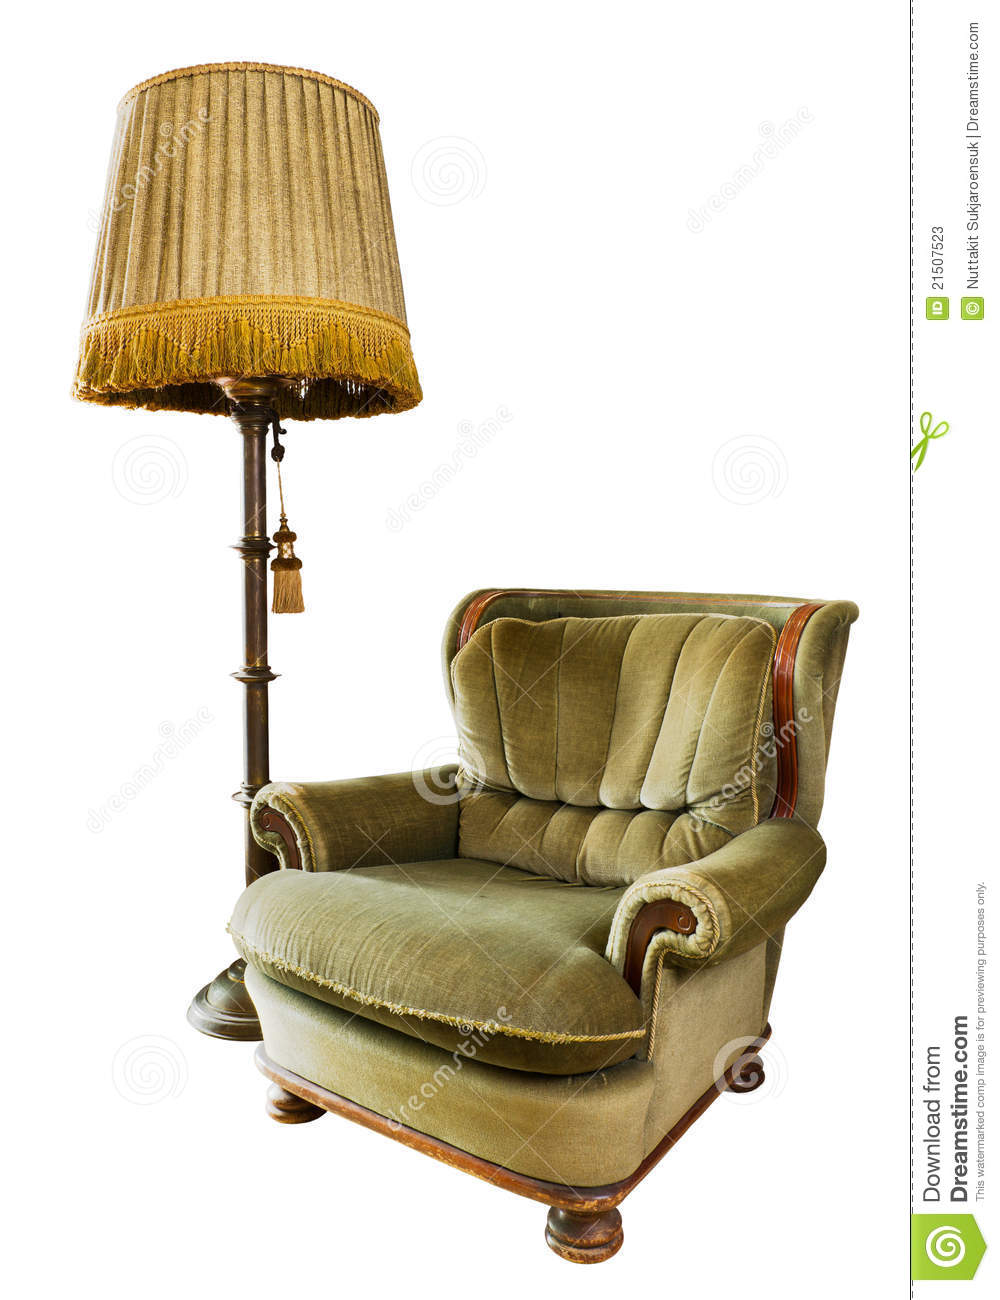 Old Luxury Armchair With Floor Lamp On White Stock Image